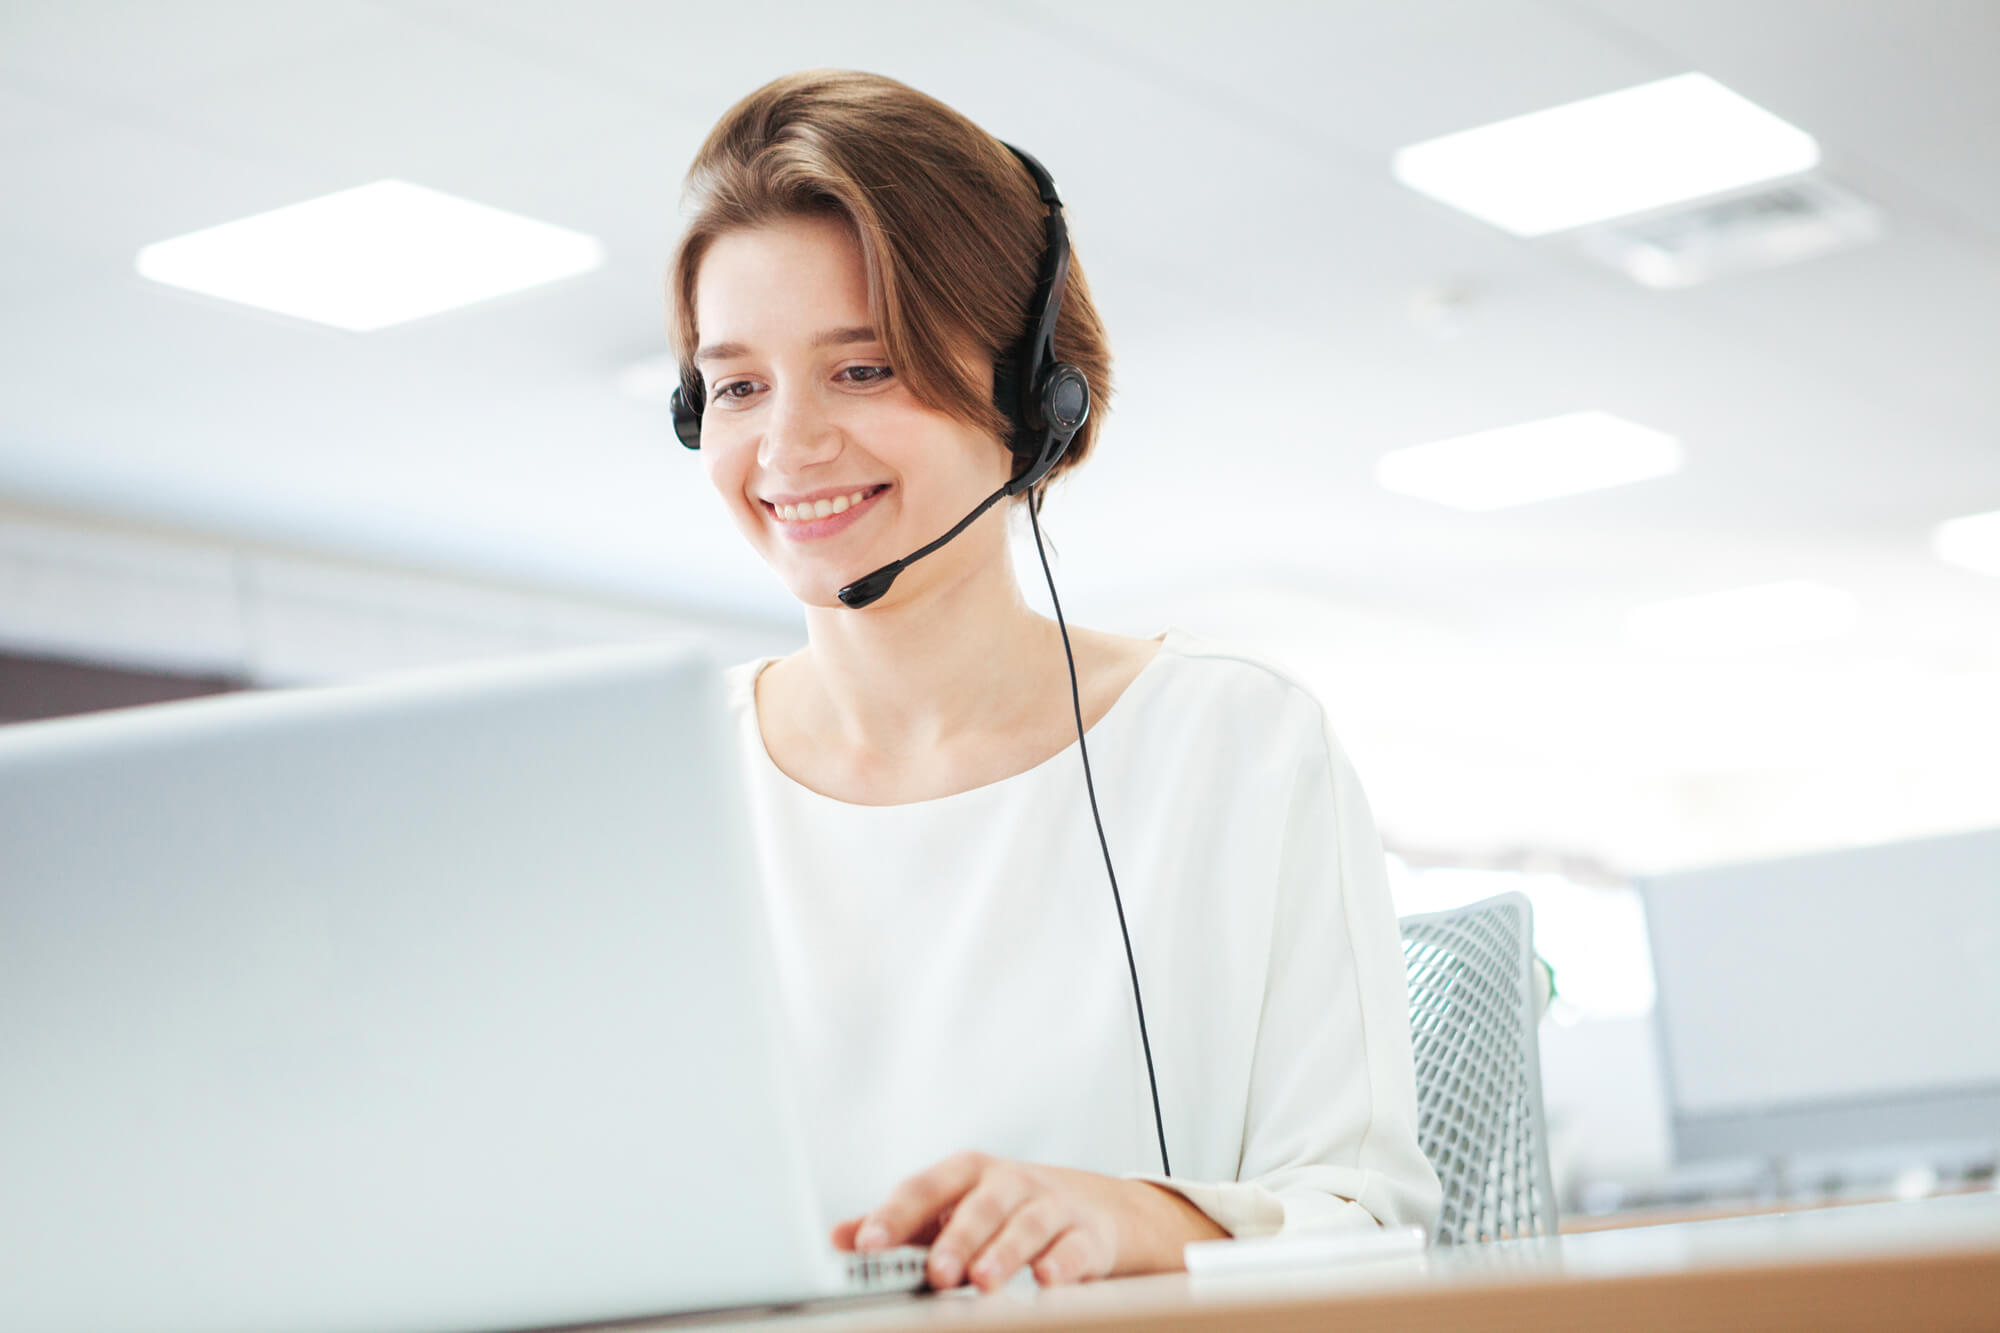 Tecnologia para contact center: como pode reduzir os custos da empresa?